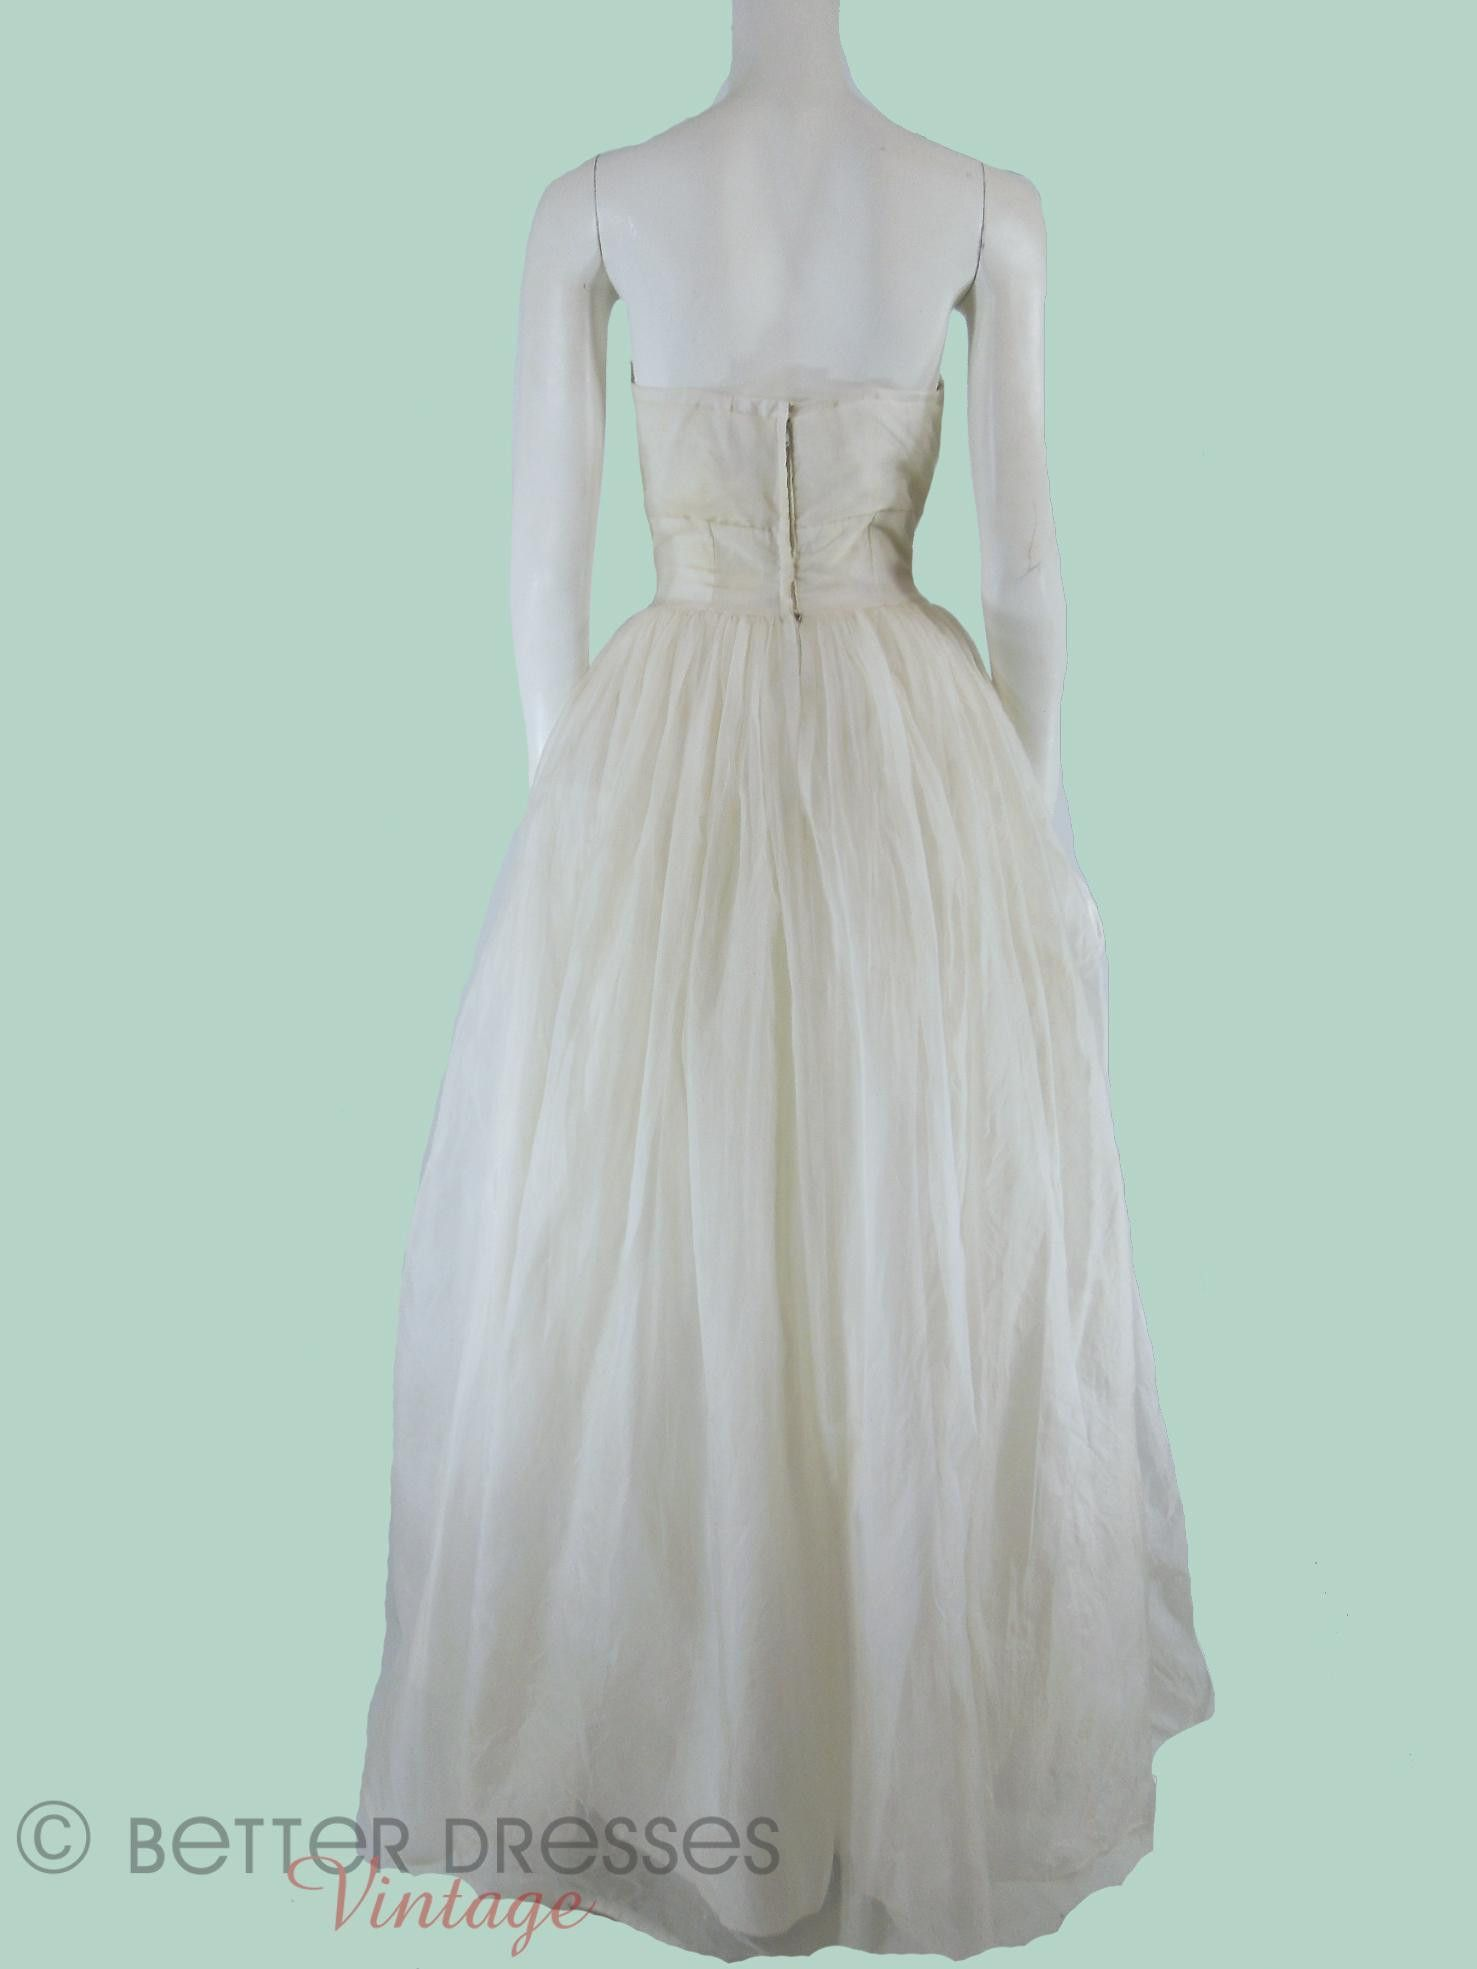 50s/60s Strapless Party or Wedding Dress - sm | Full skirts, Prom ...